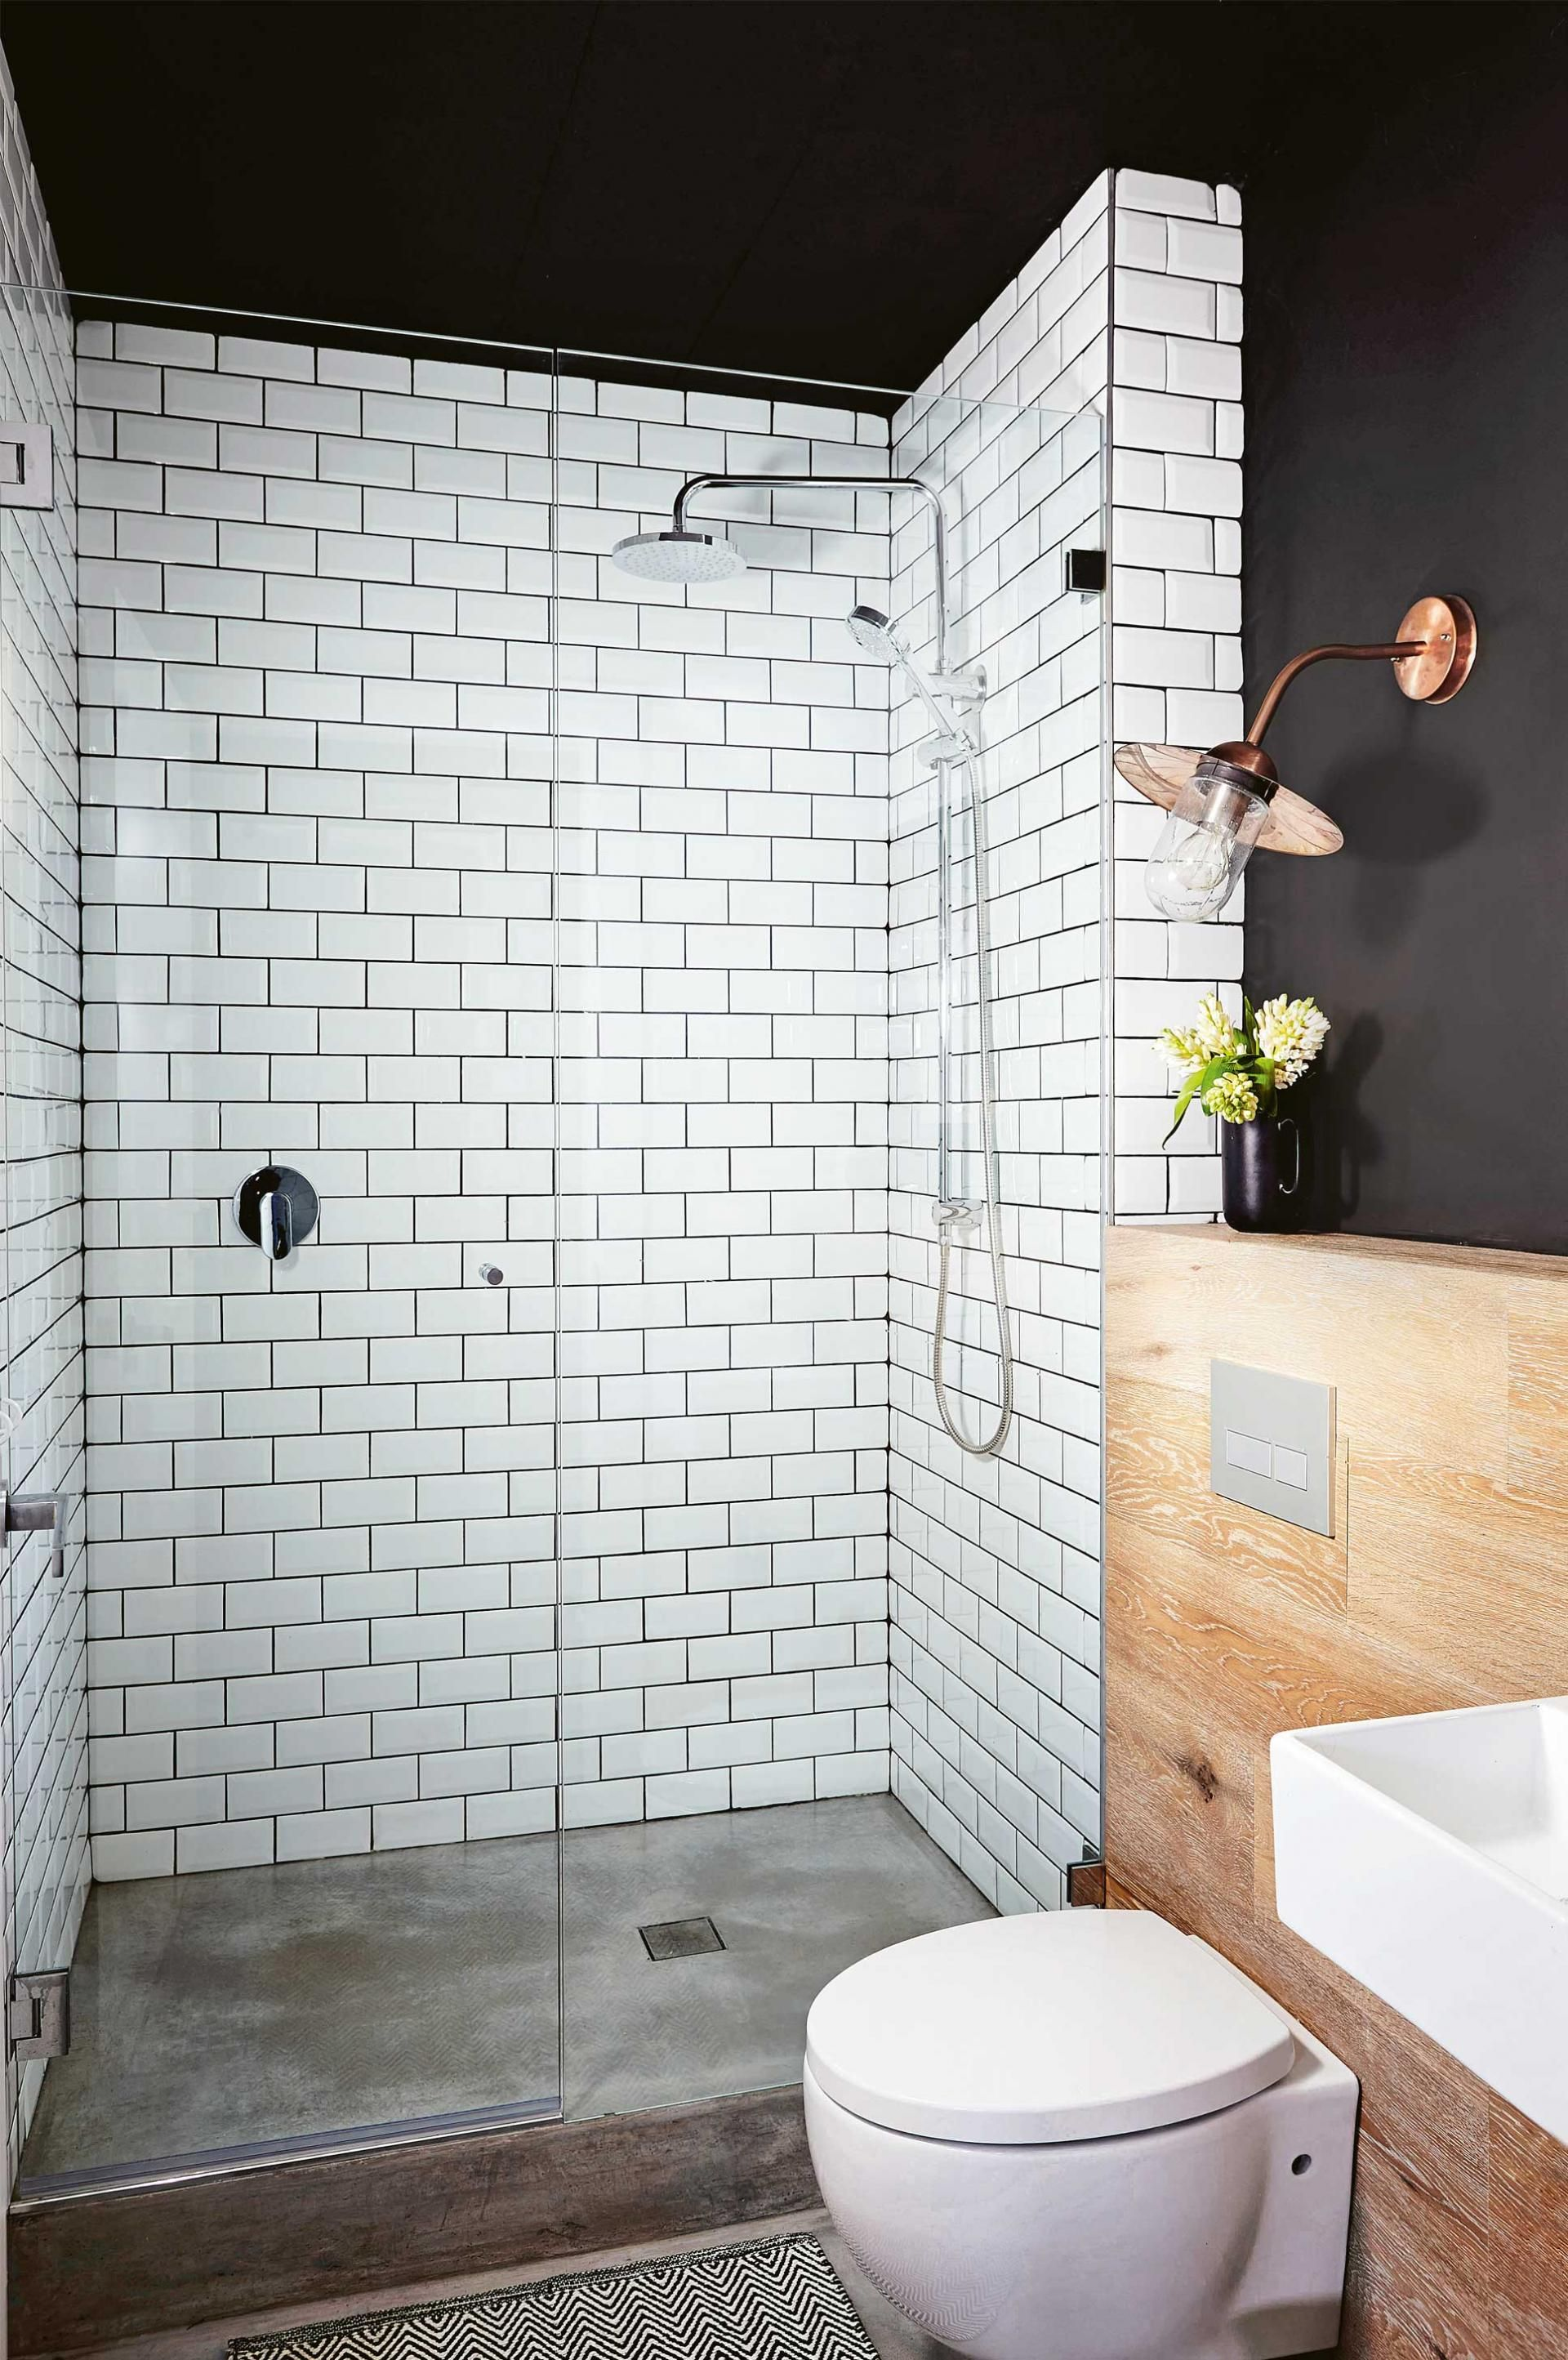 Wow. So bold with the mix of materials, black walls, white tiles ...